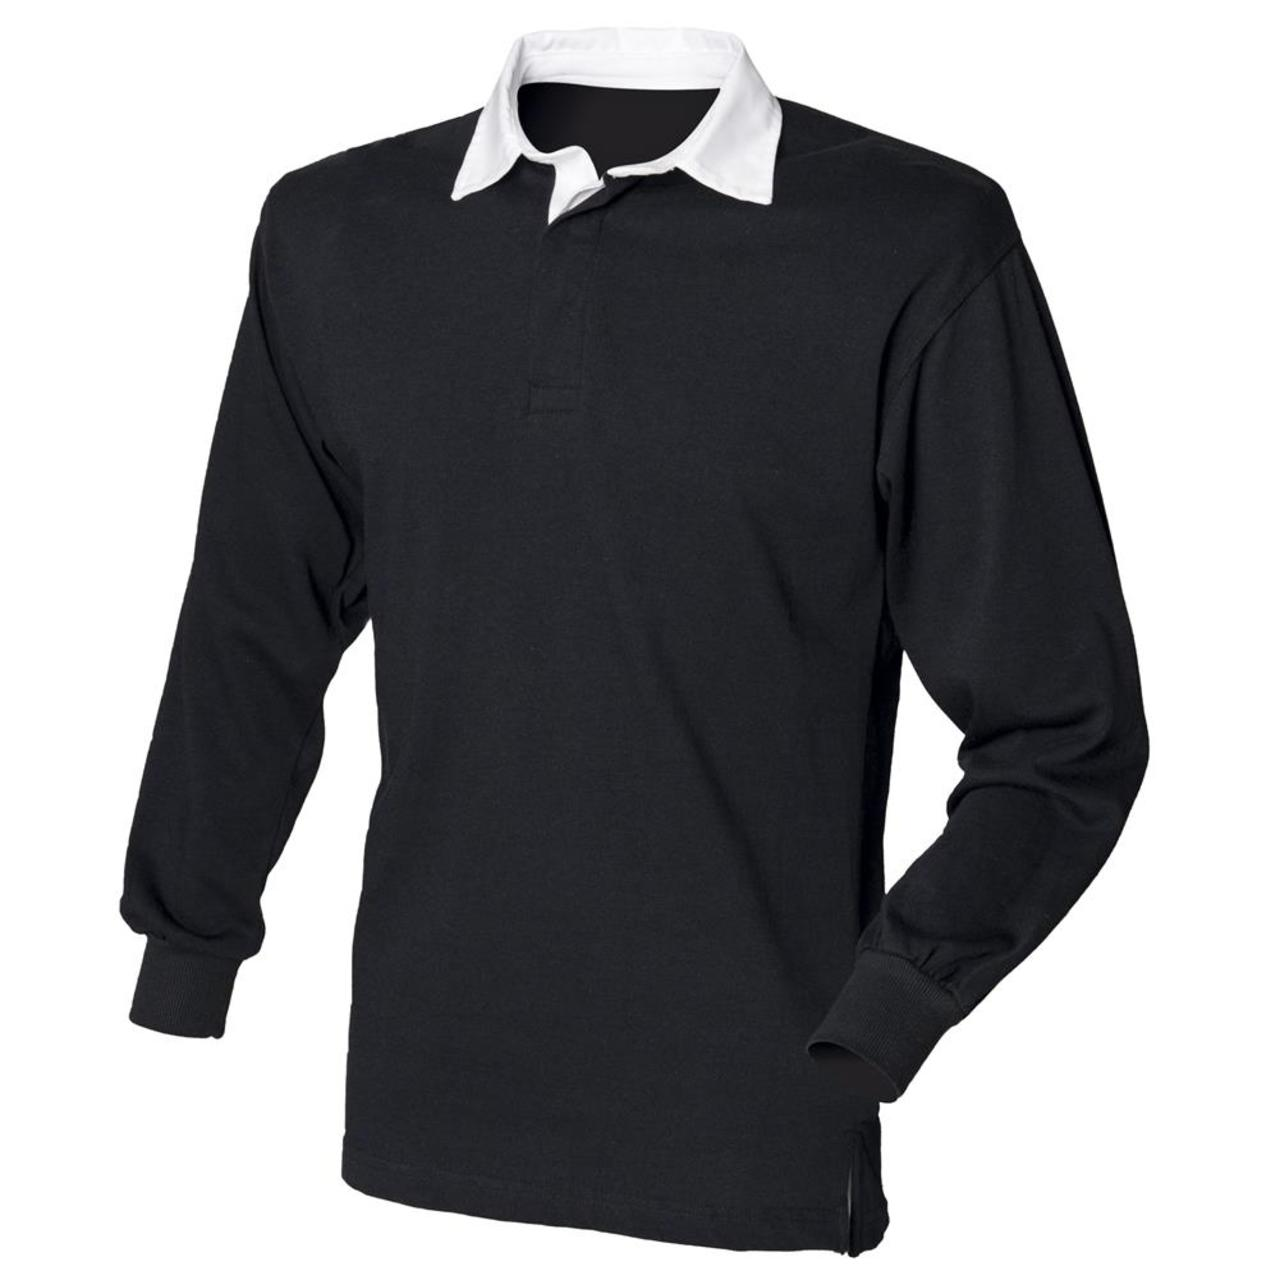 Black t shirt with white collar - Front Row Long Sleeve Classic Rugby Shirt Mens